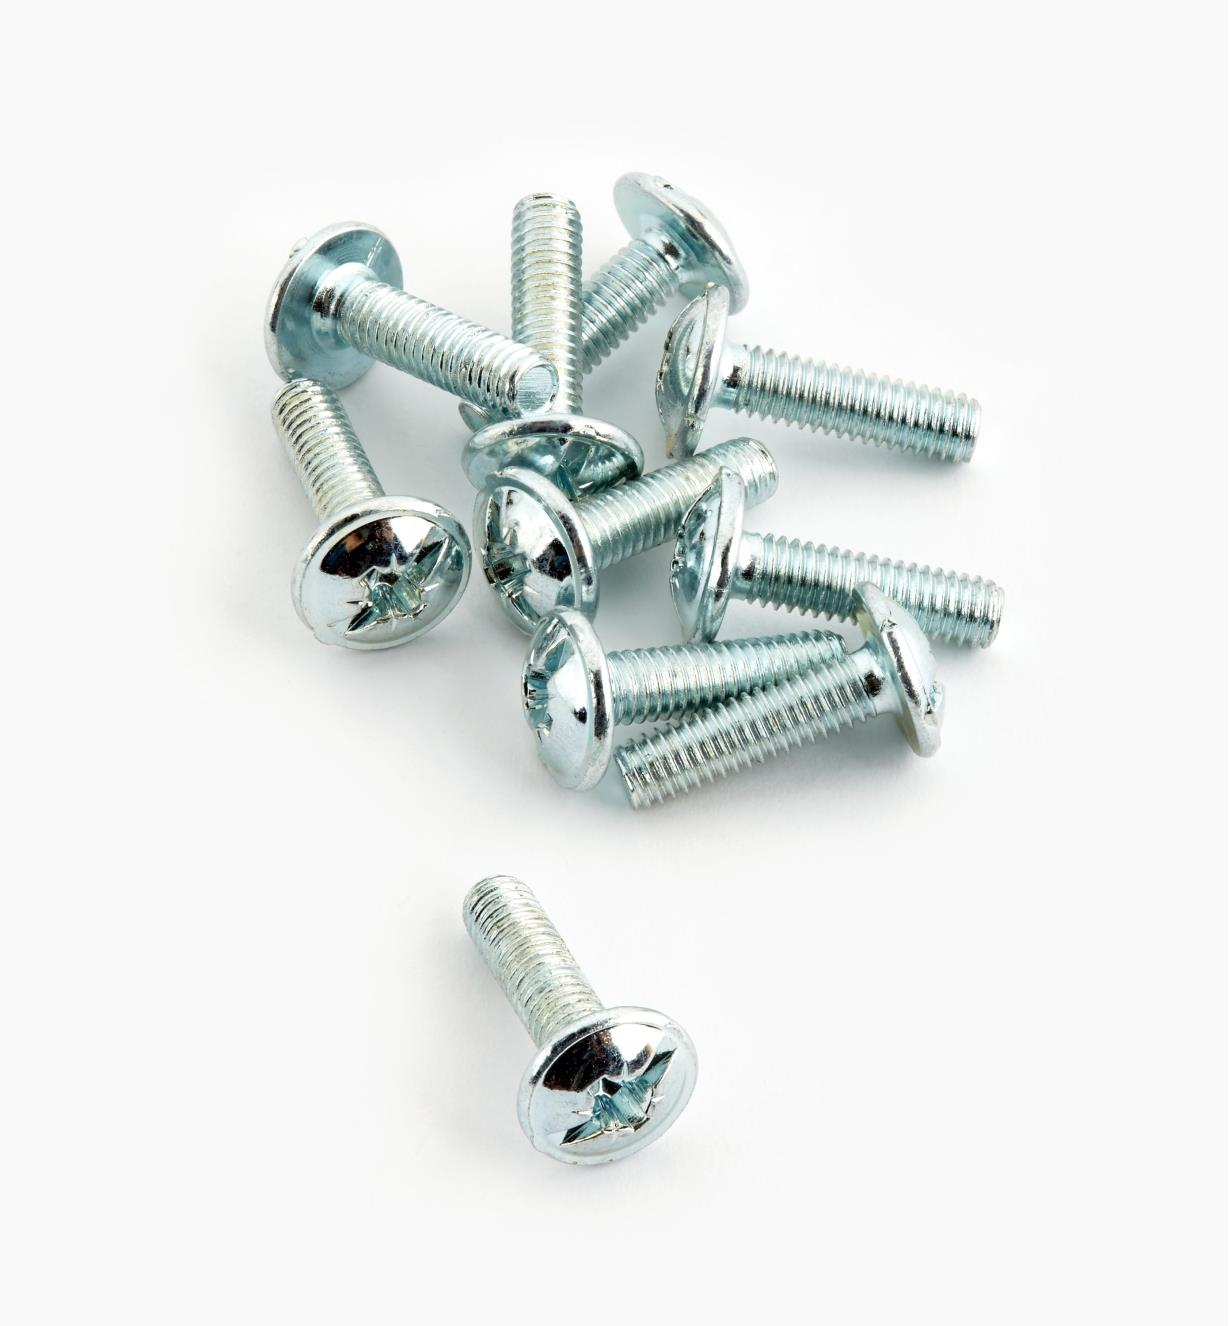 00N3315 - 15mm M4 Bolts, pkg. of 10